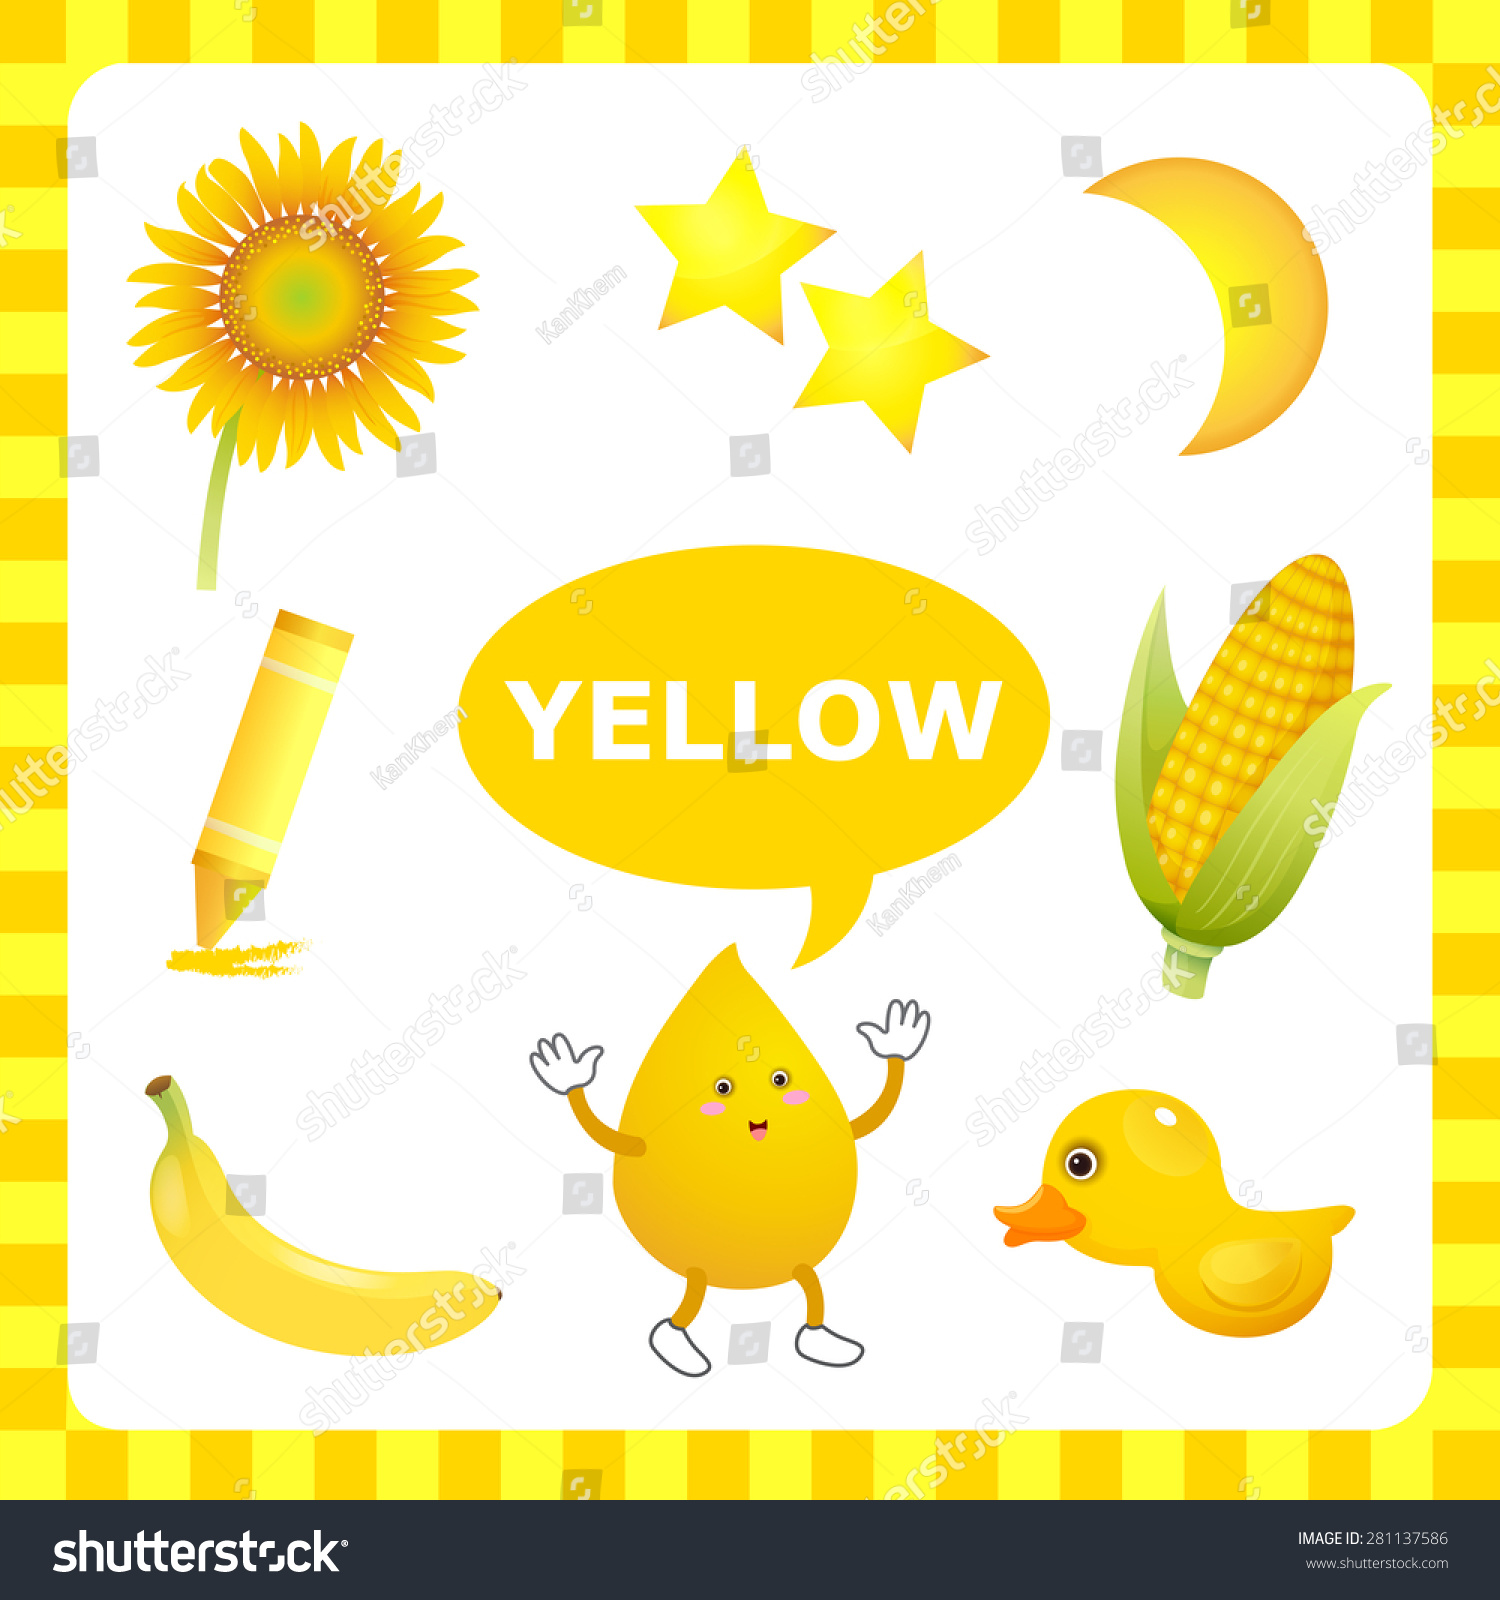 Color Yellow Clipart Free Image